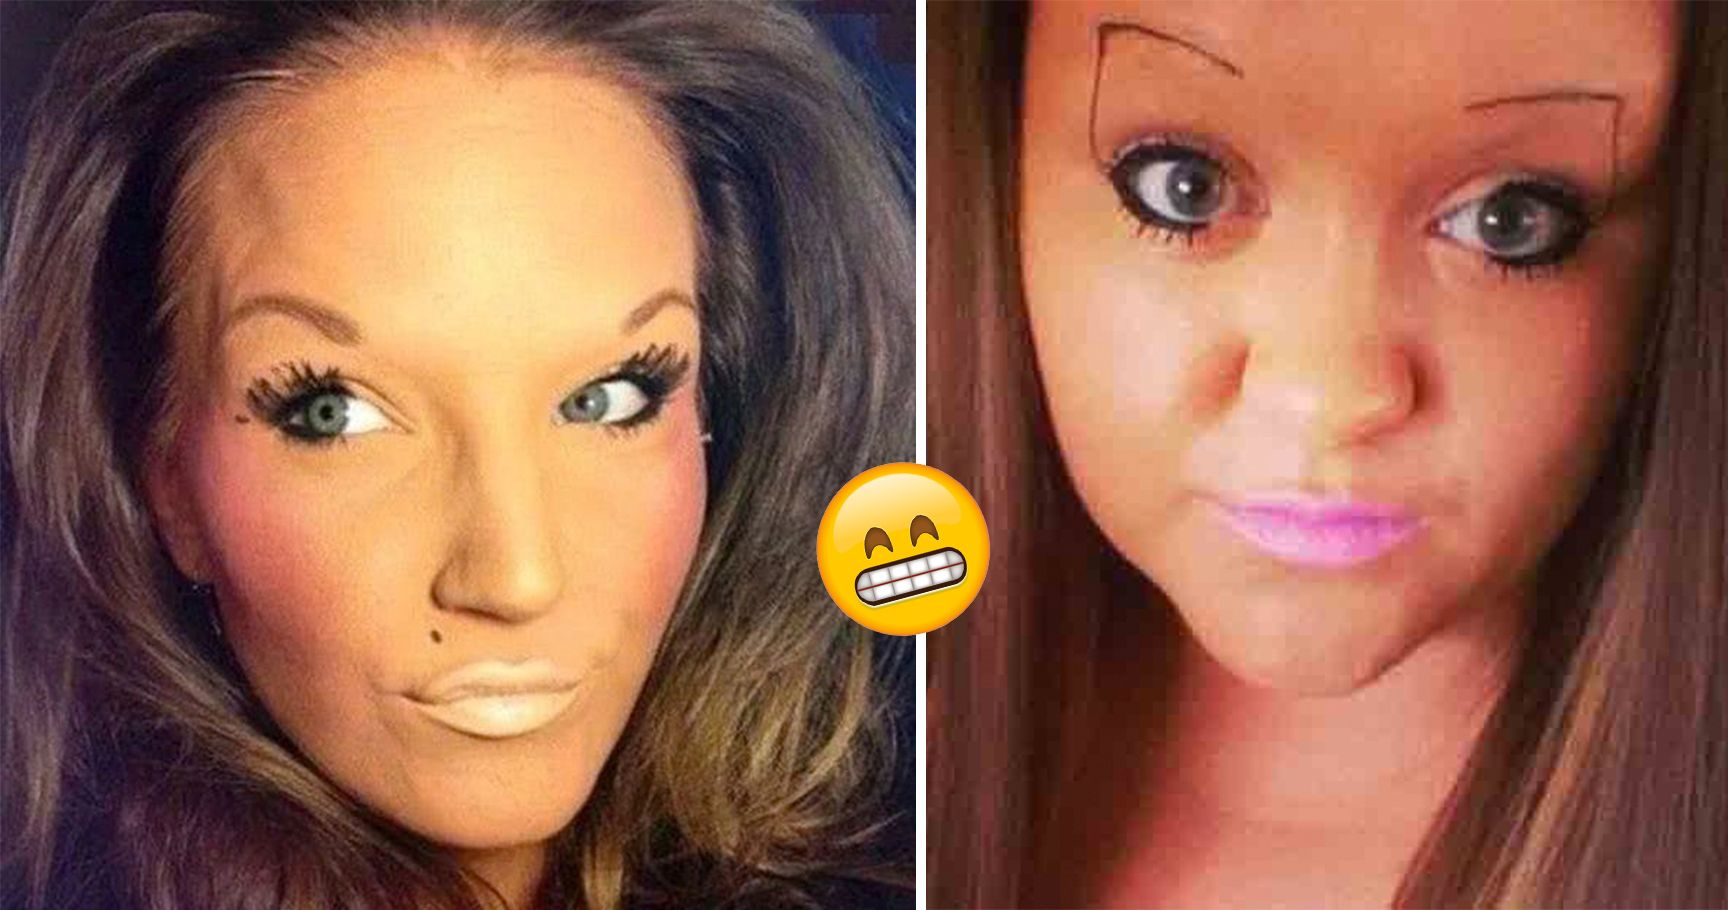 15 Eyebrow Fails That Ruined People's Lives